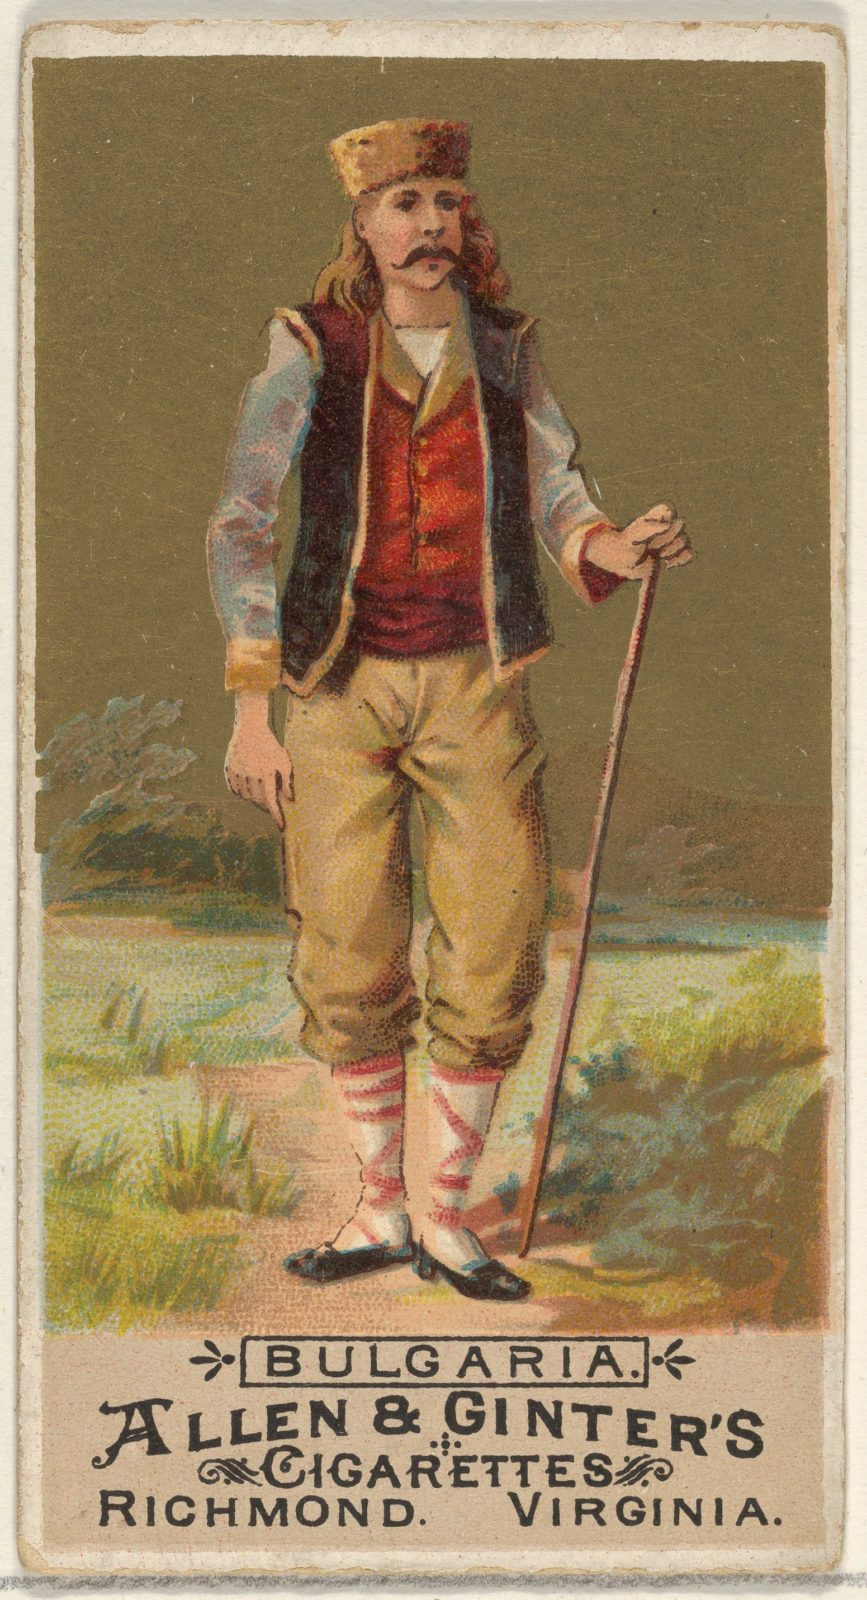 Bulgaria, from the Natives in Costume series (N16) for Allen & Ginter Cigarettes Brands